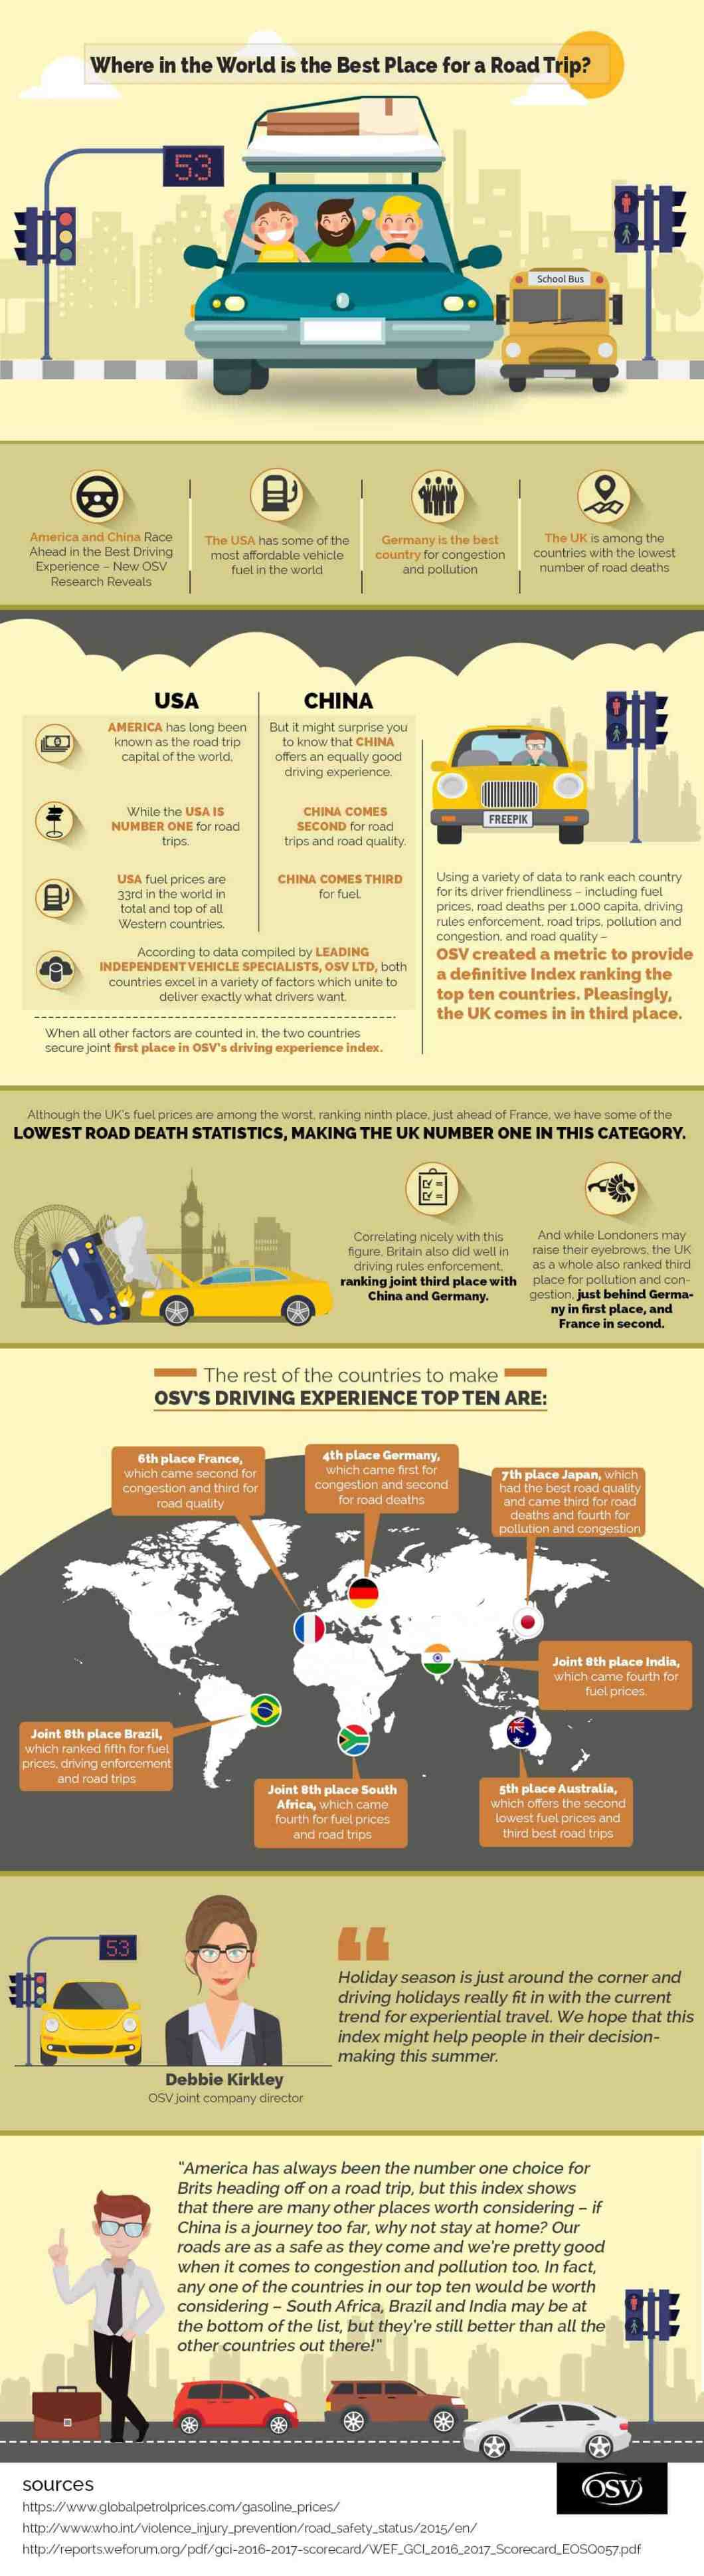 Road Tripping: Which Places Give the Best Driving Experience? - Infographic